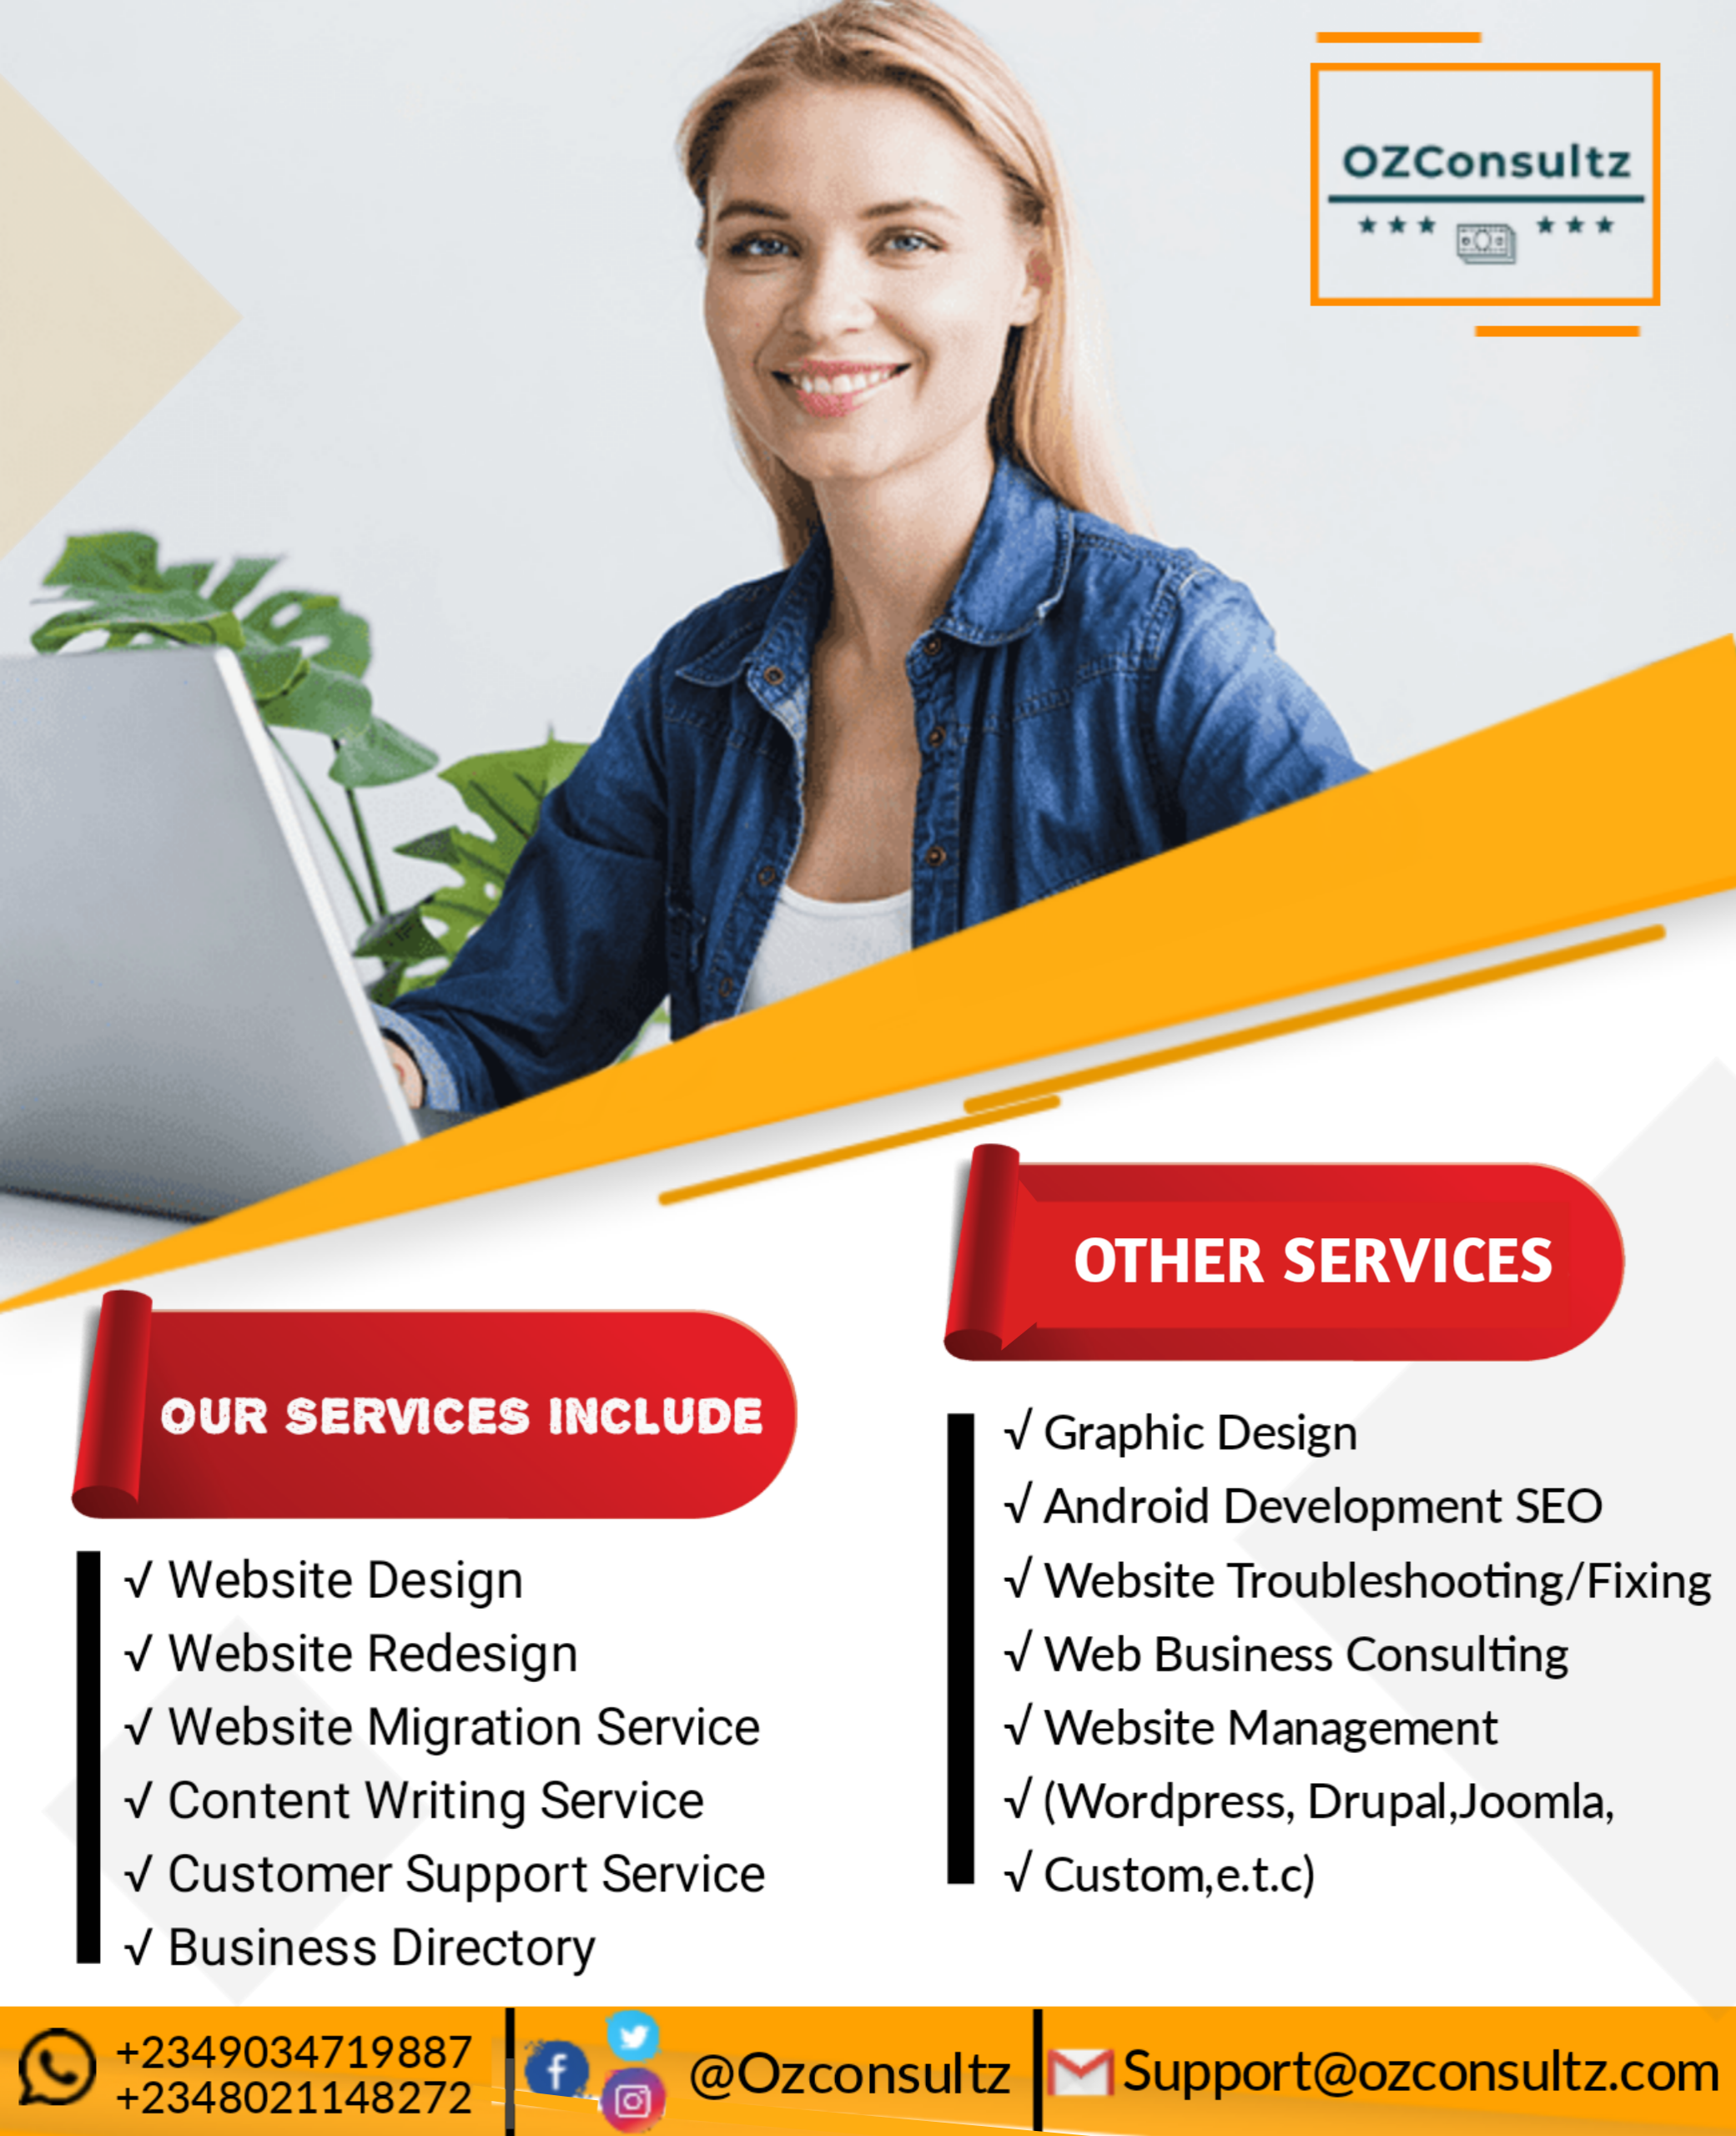 Ozconsultz- Affordable Web Design Agency